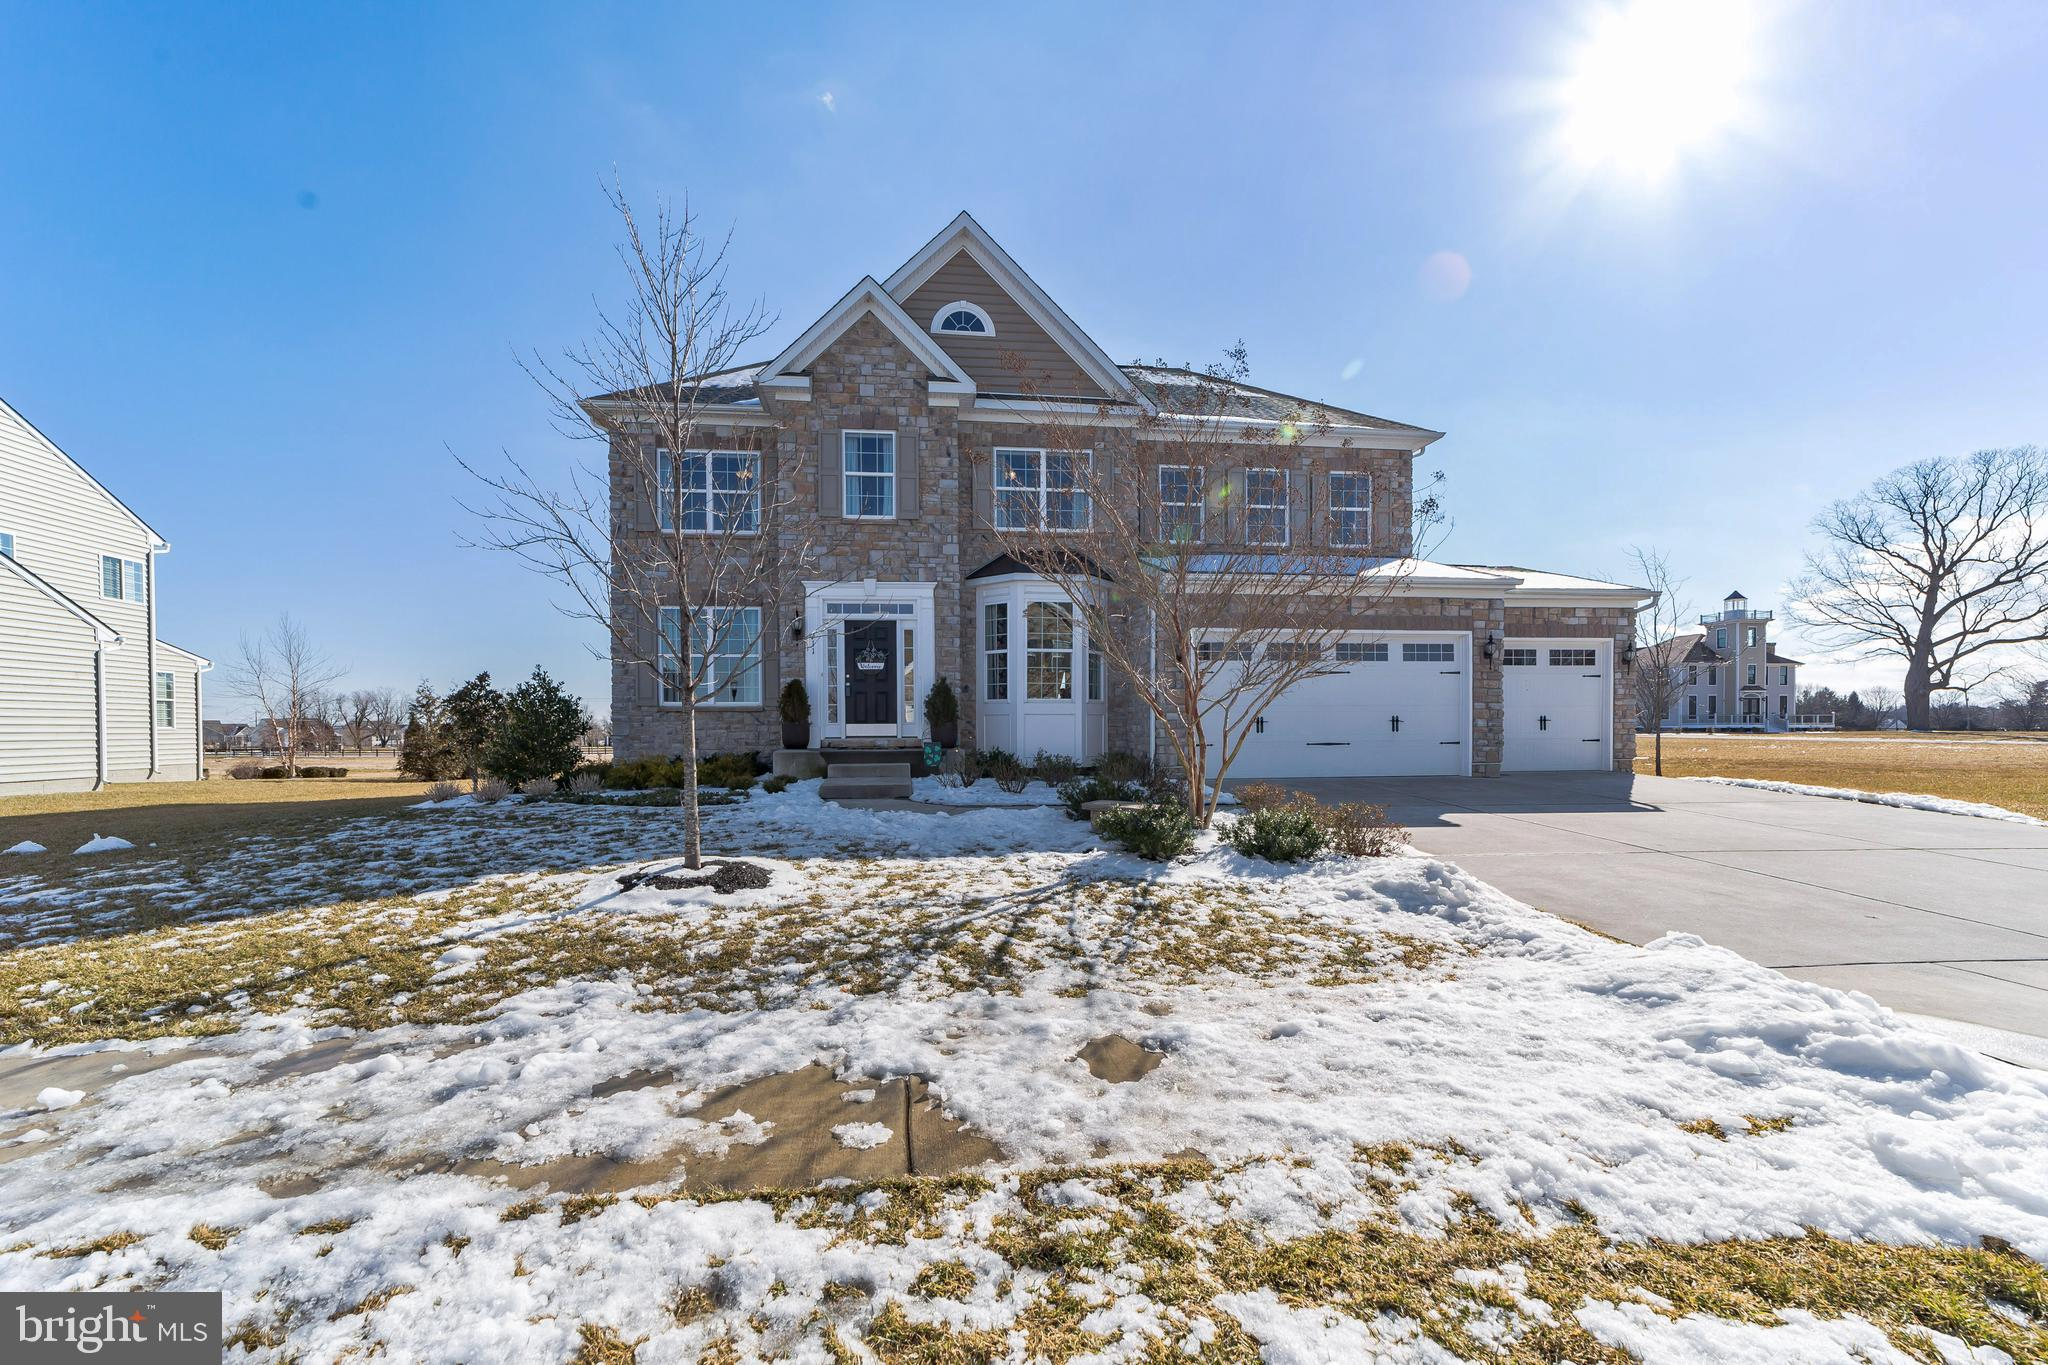 Don't miss this meticulously maintained home in the sought-after neighborhood of Ashby's Place! This community of only 54 homes is situated in the award-winning Appoquinimink School District. This lovely stone front home with a three-car garage and a walk-out finished basement impresses from the moment you pull into the driveway. Upon entering the large foyer, you are flanked by the large, open living room and dining room with wide plank hardwood floors that run throughout the main level. The foyer leads you into a grand two-story family room with a floor-to-ceiling stone fireplace. Located on one side of the family room is a large home office/den with lots of natural light. On the other side is your large eat-in kitchen with an island, stainless steel appliances and double wall ovens. The sliders lead to additional living space on the paver patio with garden walls. Upstairs the main bedroom with its walk-in closet and large tile bath is the perfect retreat. Also on this level are three large bedrooms, two with walk-in closets; the second full bath and your laundry area. The walk-out basement is finished with lots of extra living space, storage and another full bathroom! Be sure to put this on your tour today!